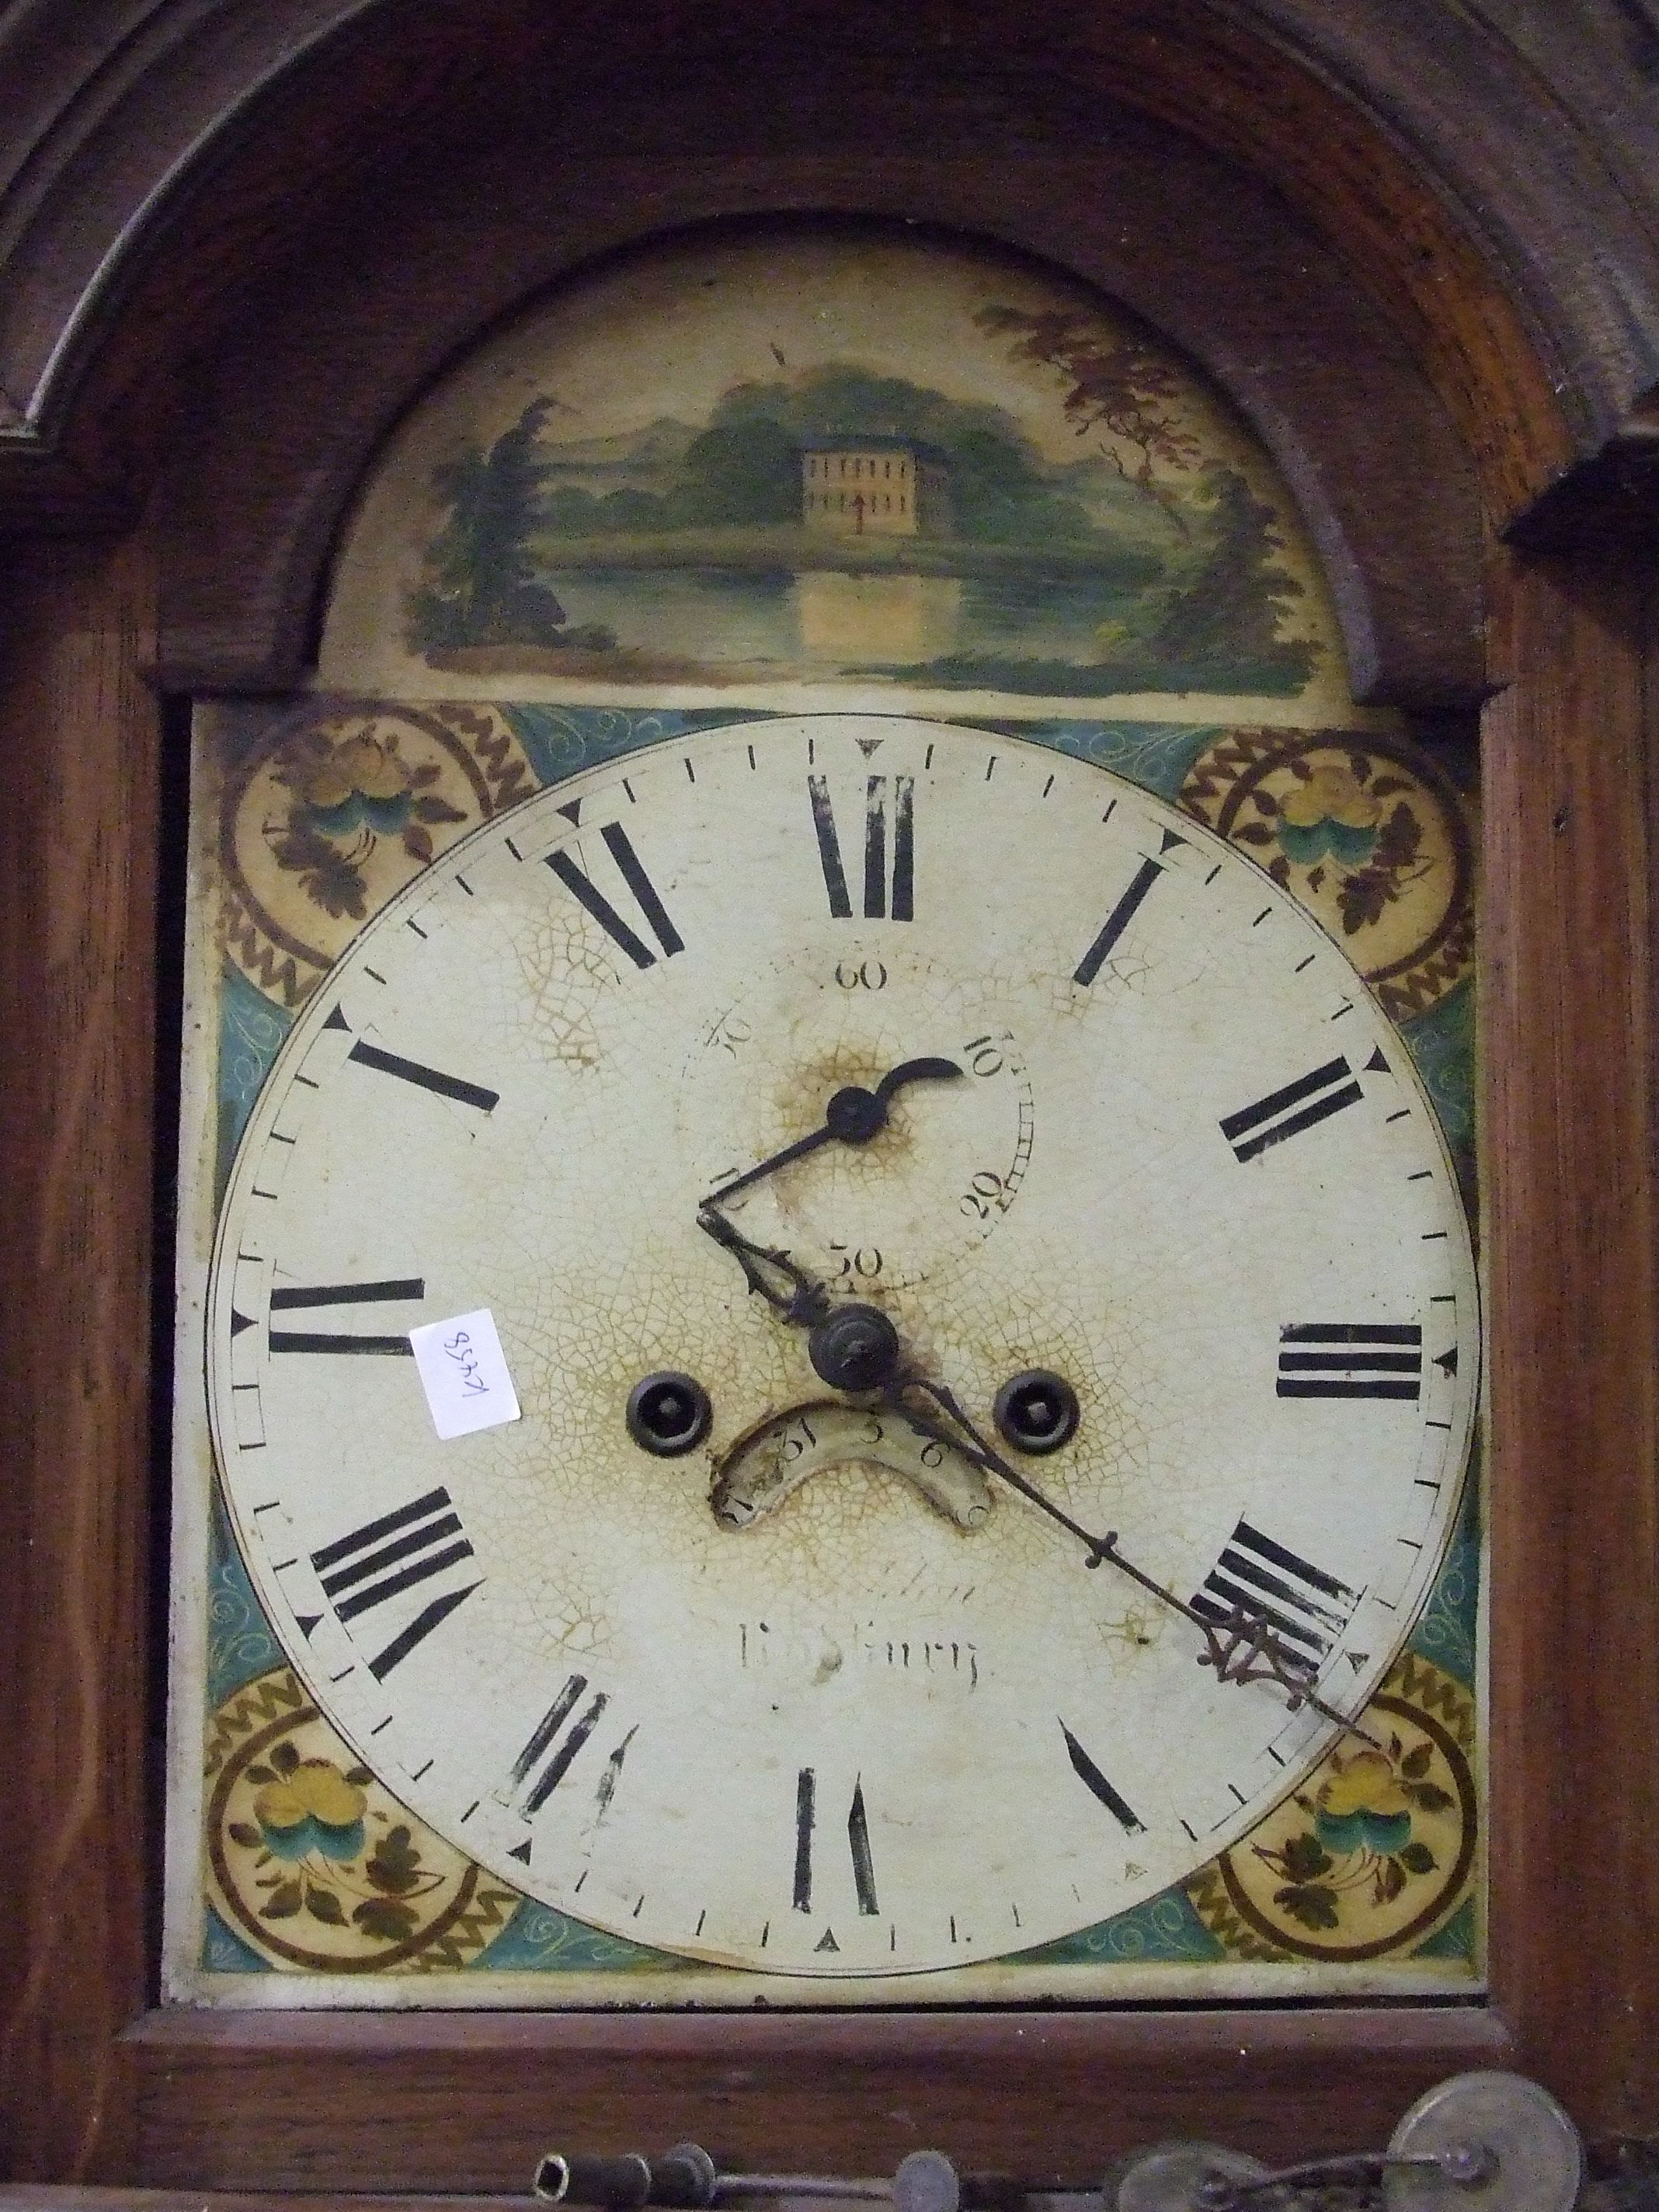 Lot 15 - An early 19th century oak longcase clock with arched painted dial and twin-train bell-striking